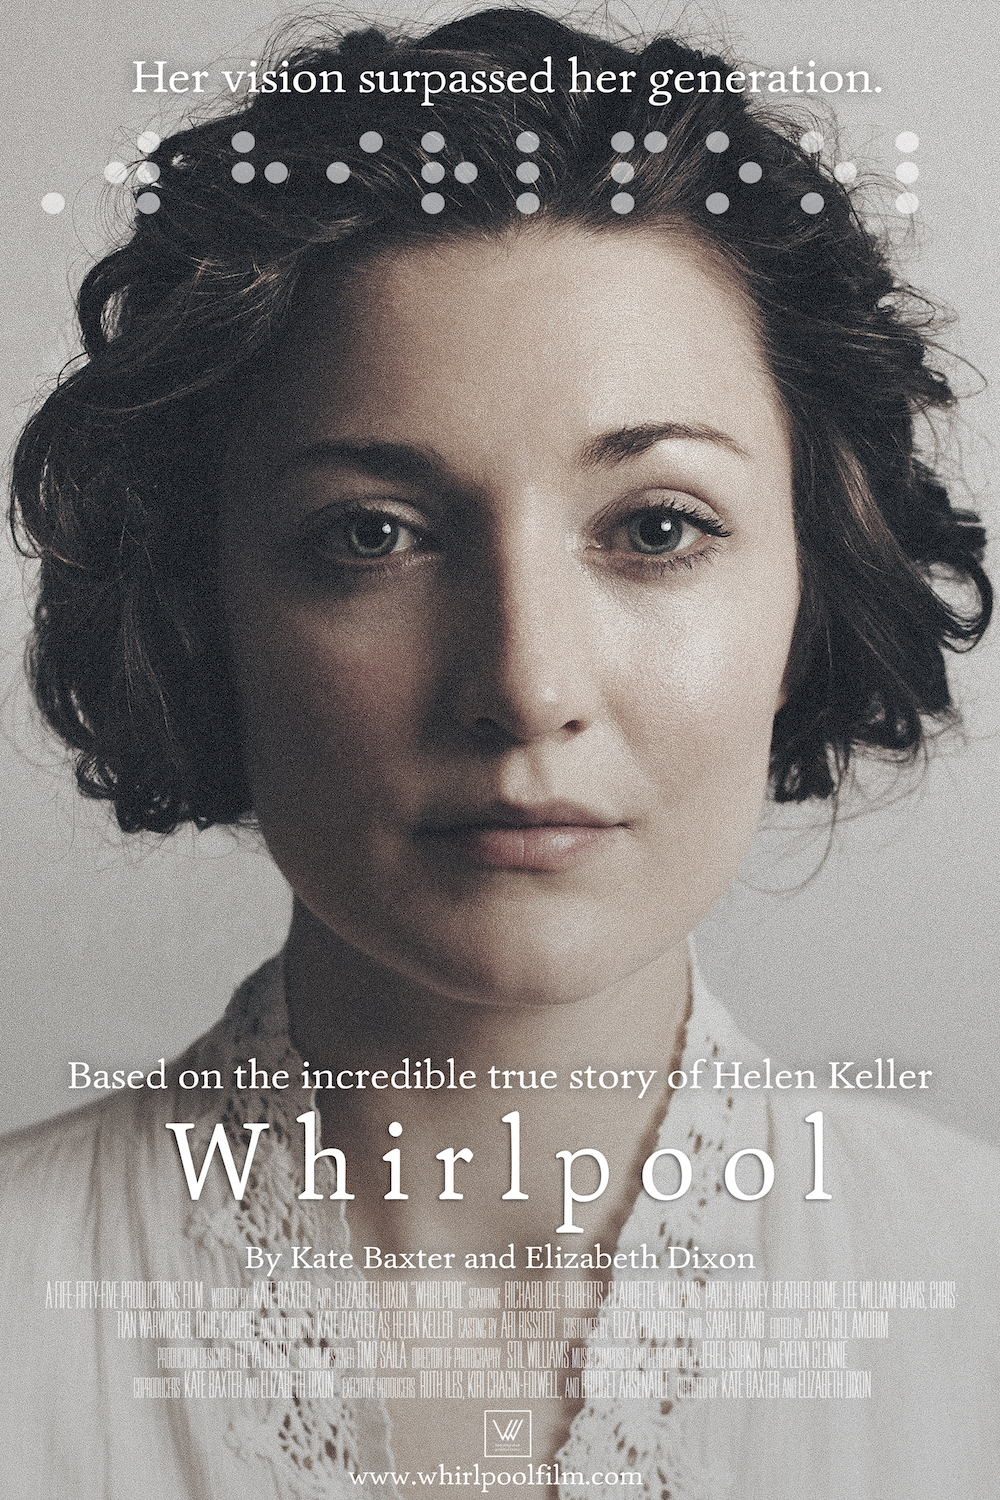 WHIRLPOOL SHORT FILM